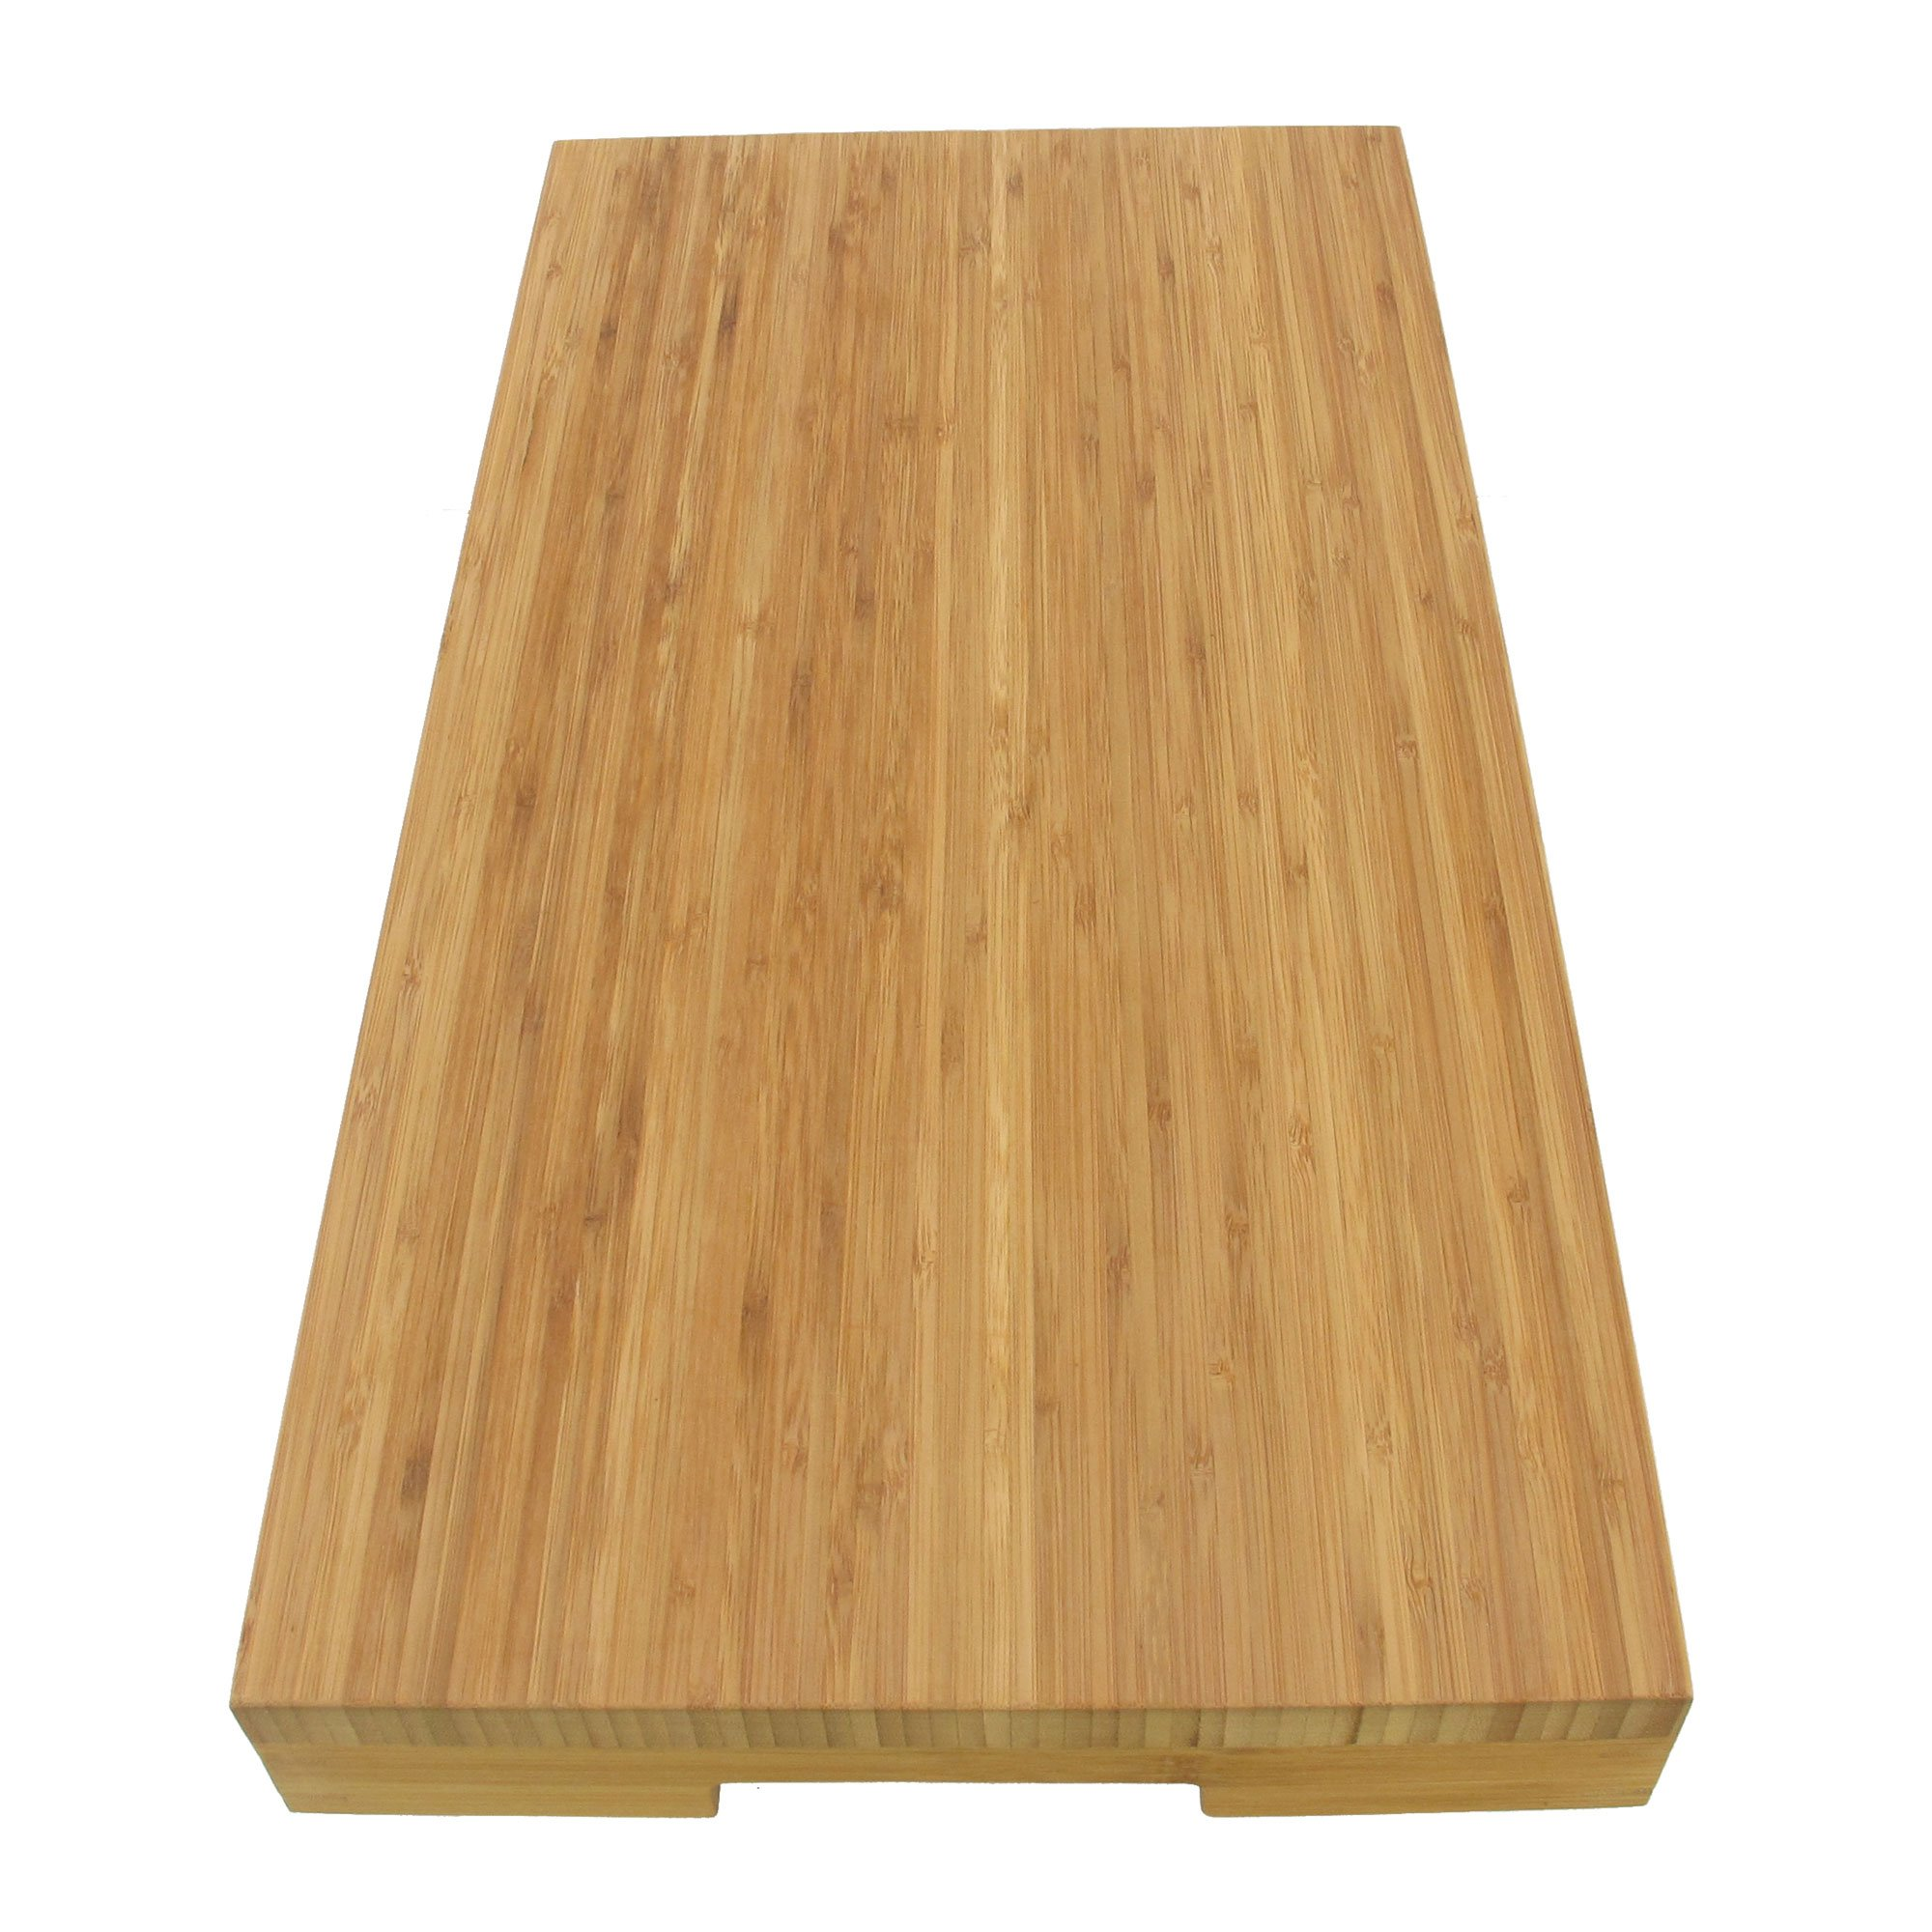 BambooMN Brand Bamboo Burner Cover/Cutting Board for Viking Cooktops, New Vertical Cut with Open End, Large (22.68''x12.01''x2.28'')